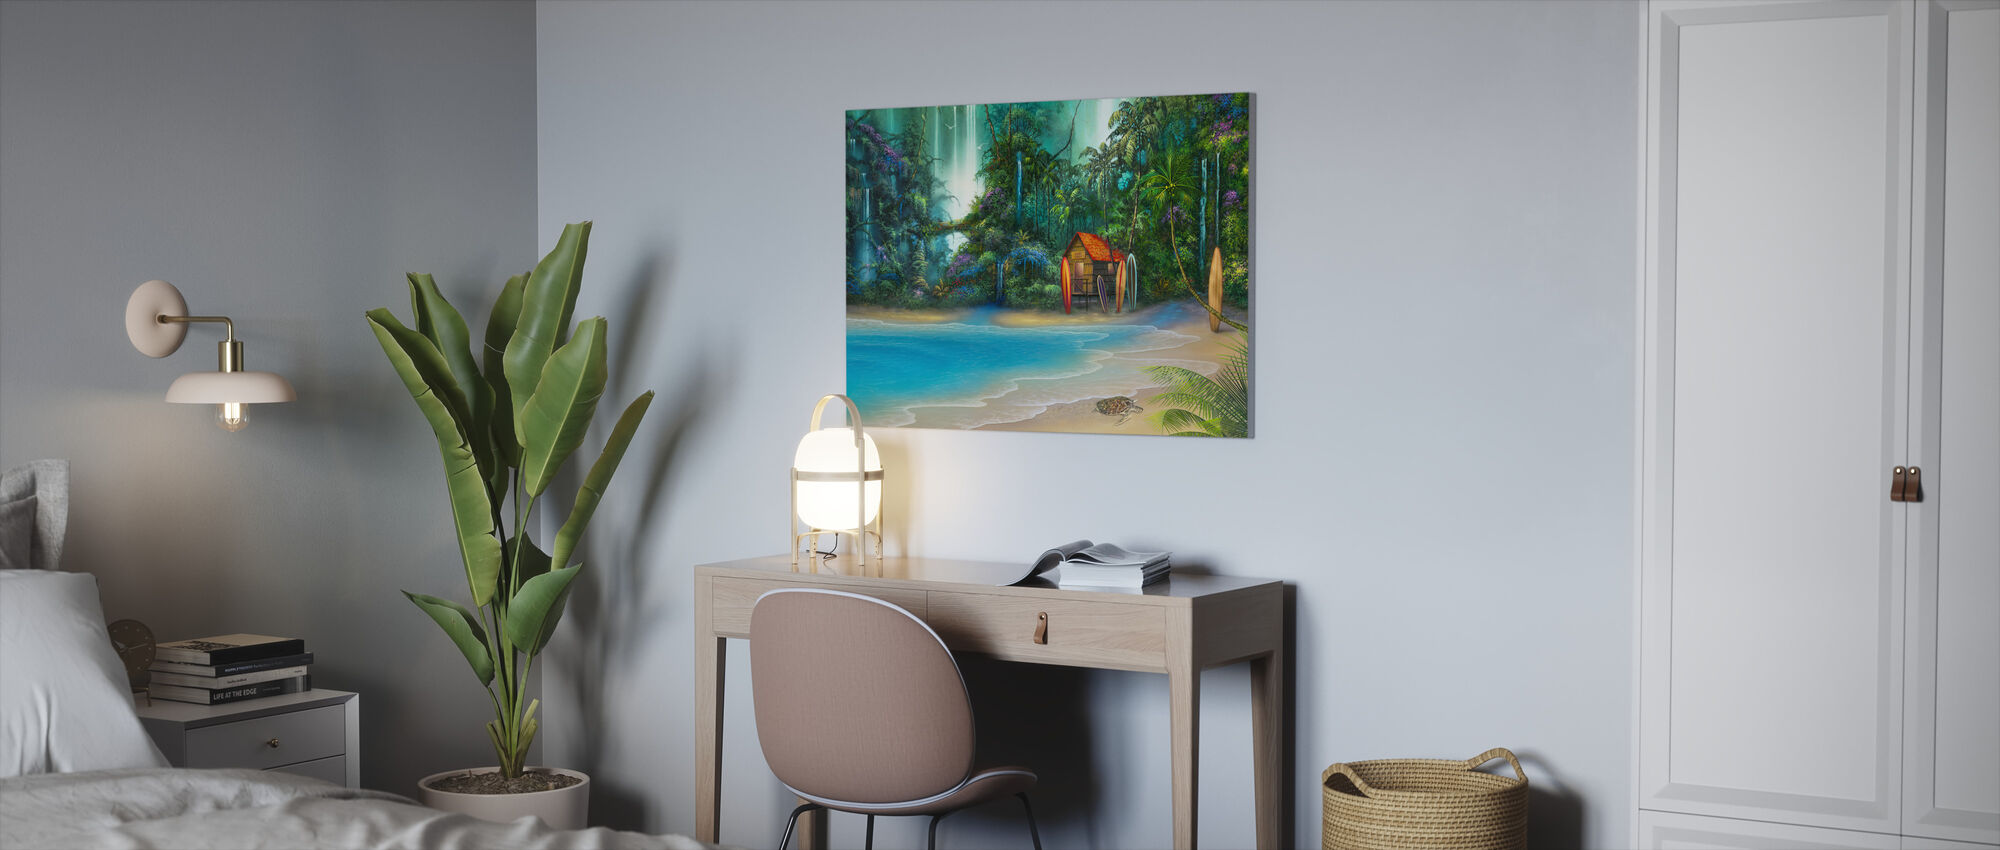 Surf Shack - Canvas print - Office